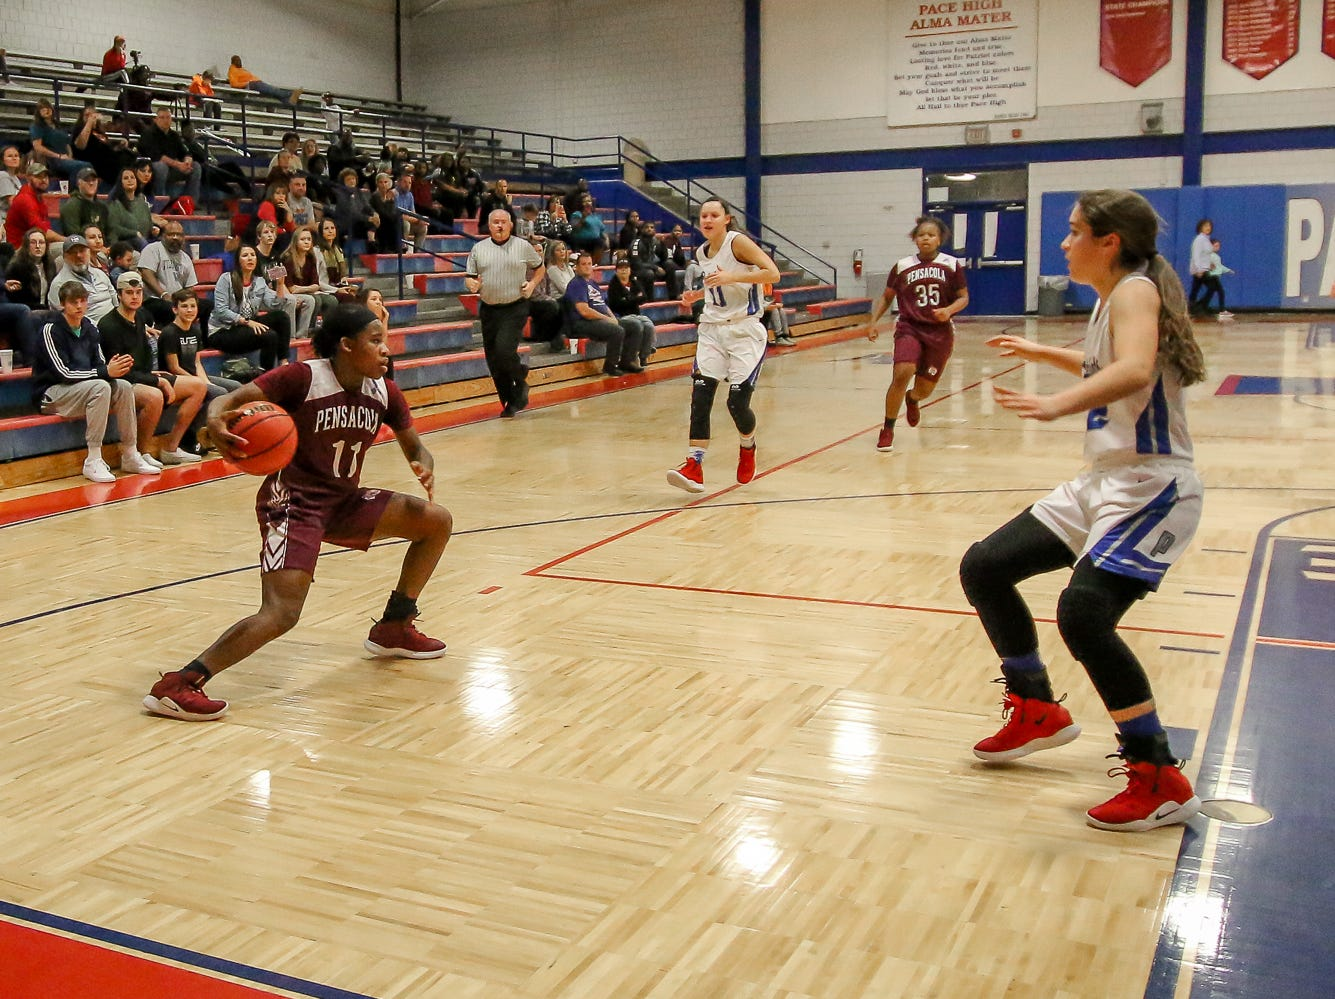 PHS' Nala Baker (11) cuts back to her left to move around the Pace defense at Pace High School on Friday, January 4, 2019.